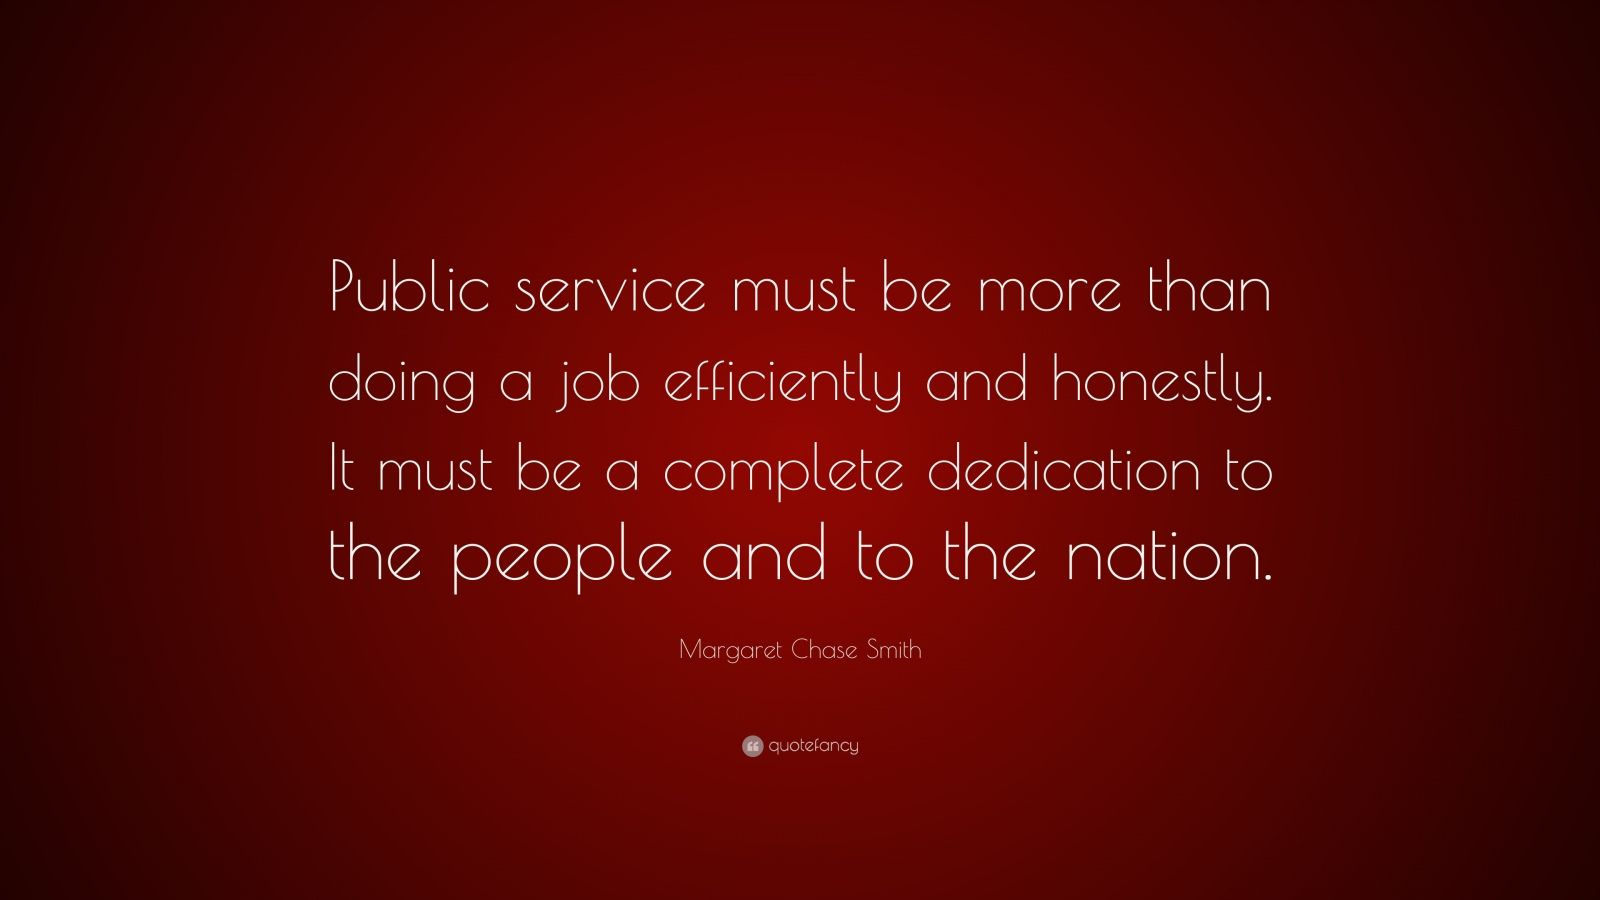 """Margaret Chase Smith Quote: """"Public service must be more than doing a job efficiently and honestly. It must be a complete dedication to the people and to the nation."""""""